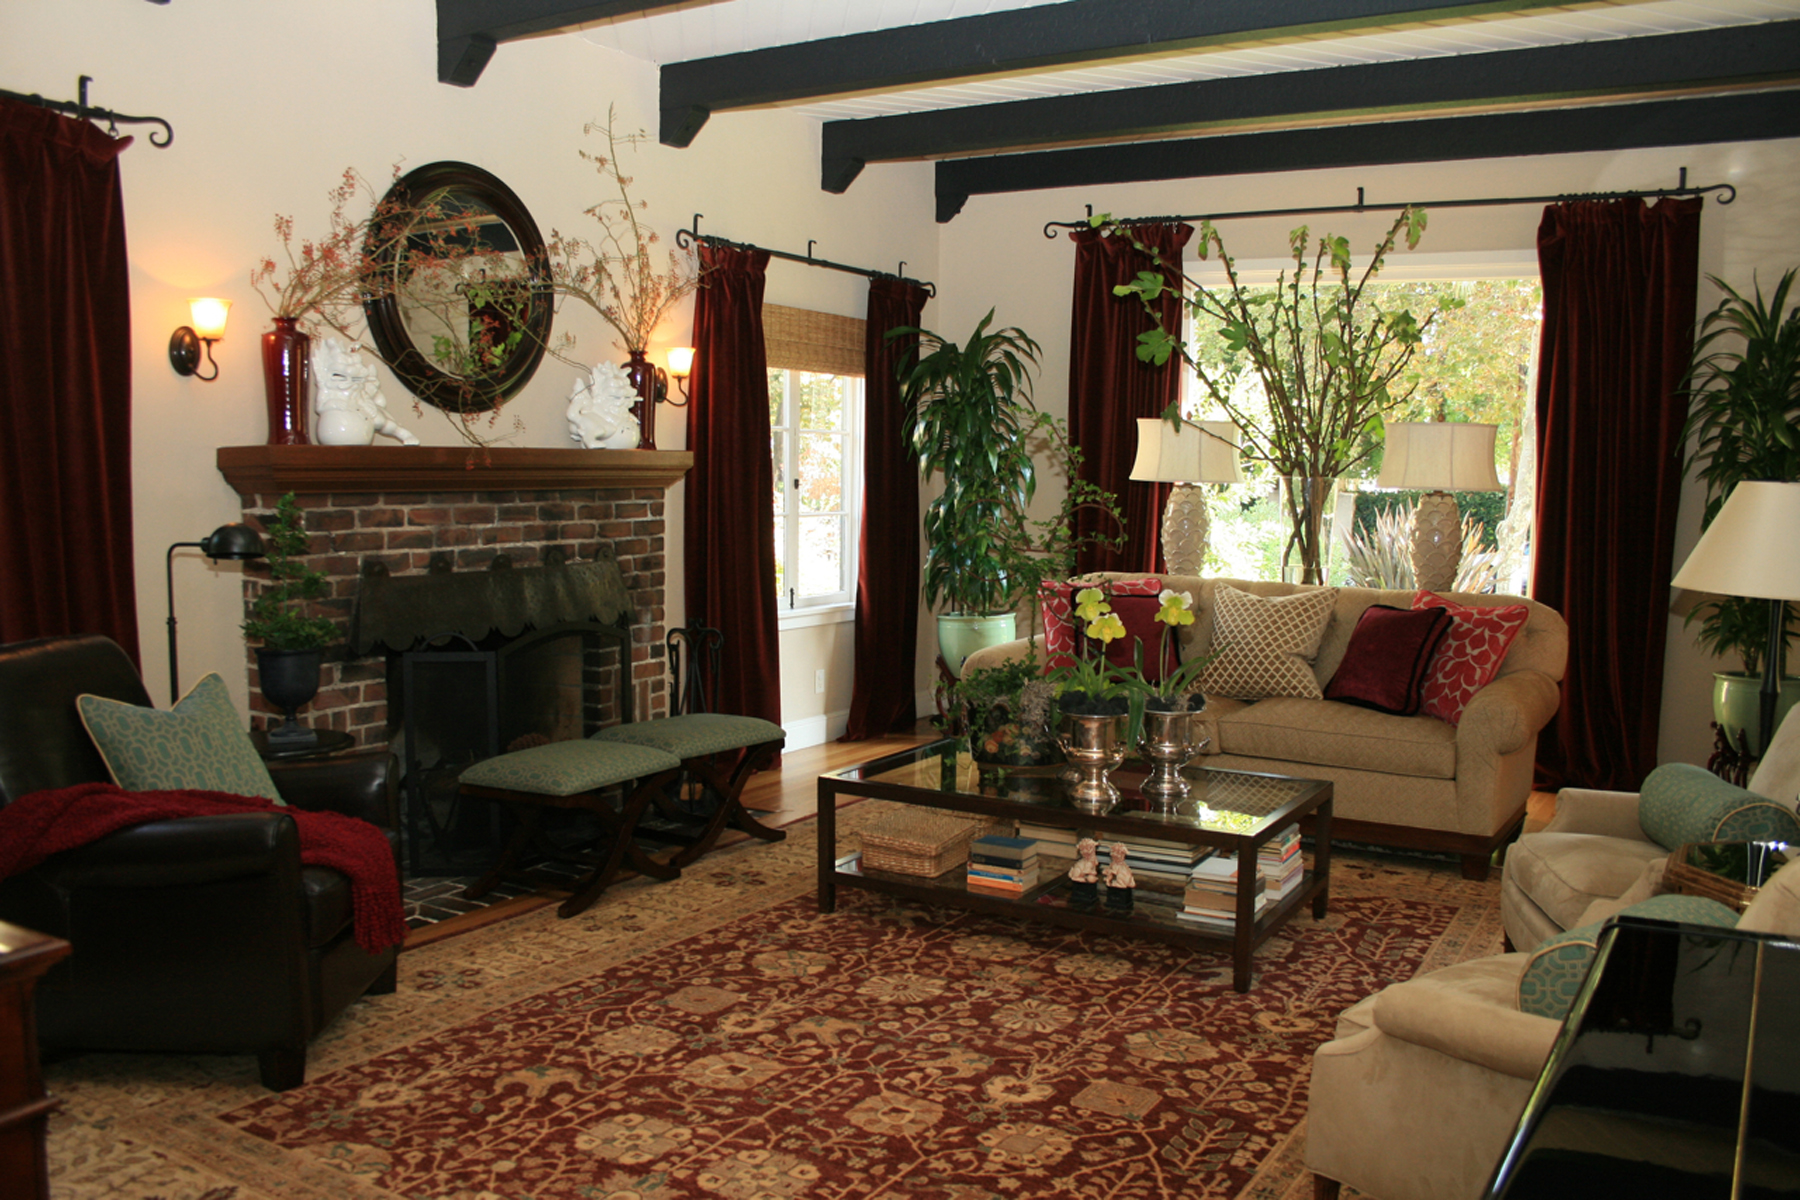 Spanish Living Room Design. Interior Amazing Classic Spanish Style Of Living Room Design With Stone  Fireplace Red Curtain LArge Carpet HomesFeed